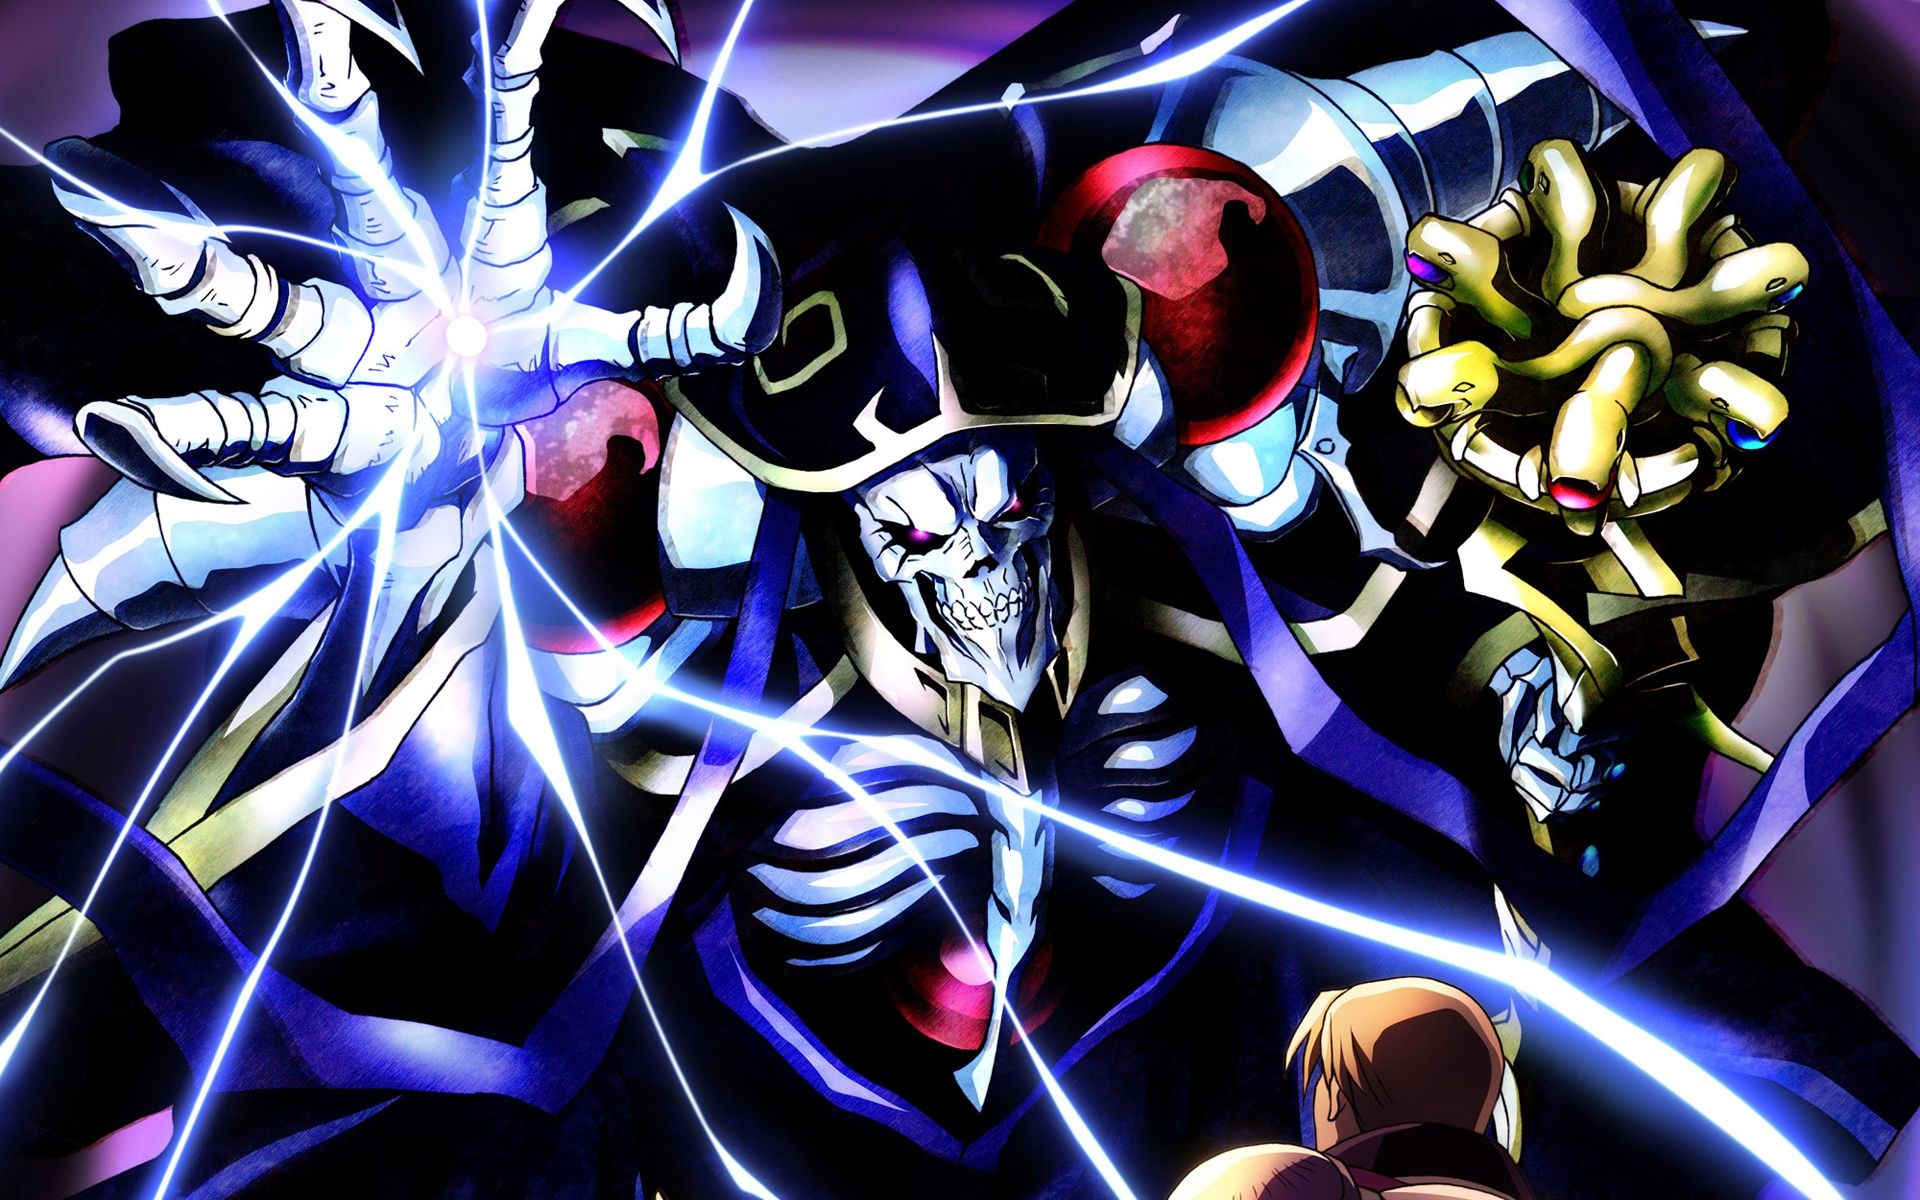 Pin by MedievalNarwhal on Anime Dungeon anime, Overlord